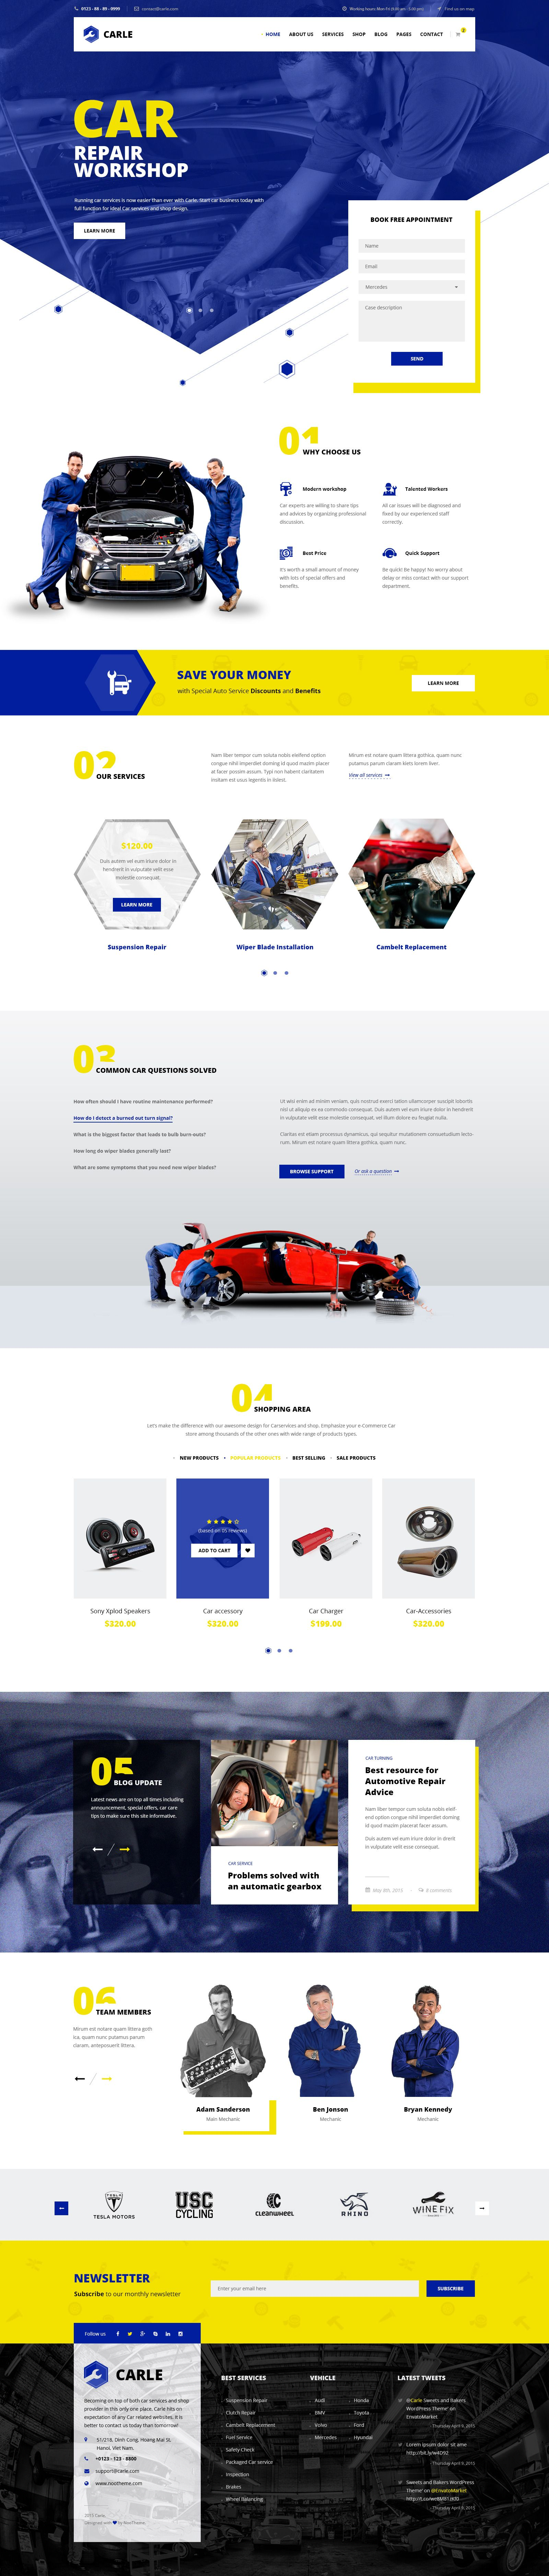 Carle - Car Service and Shop PSD Template - PSD Templates | ThemeForest